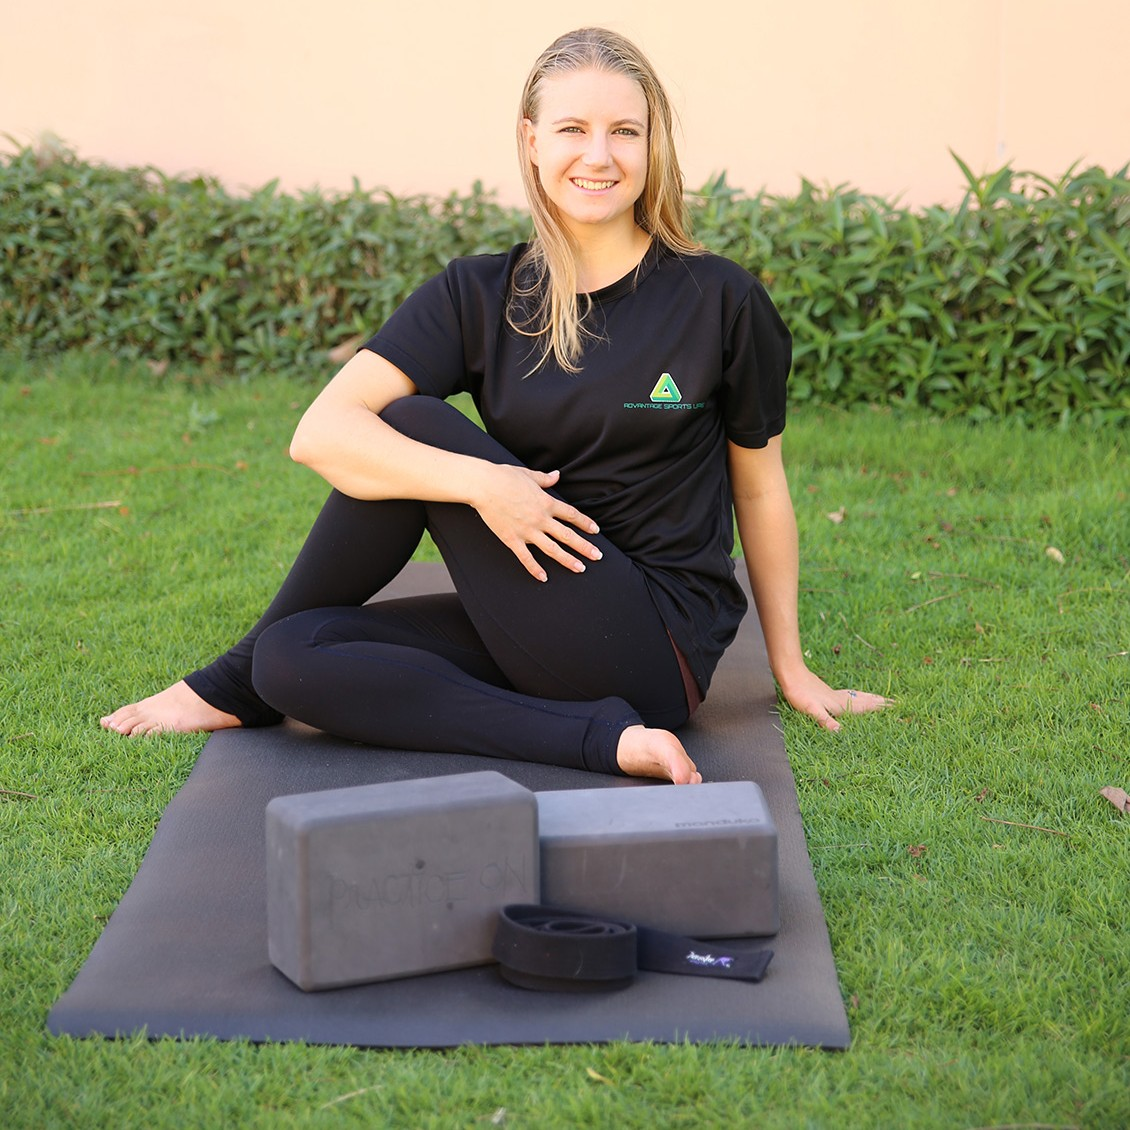 Increase your flexibility with an Abu Dhabi professional female personal trainer for yoga classes